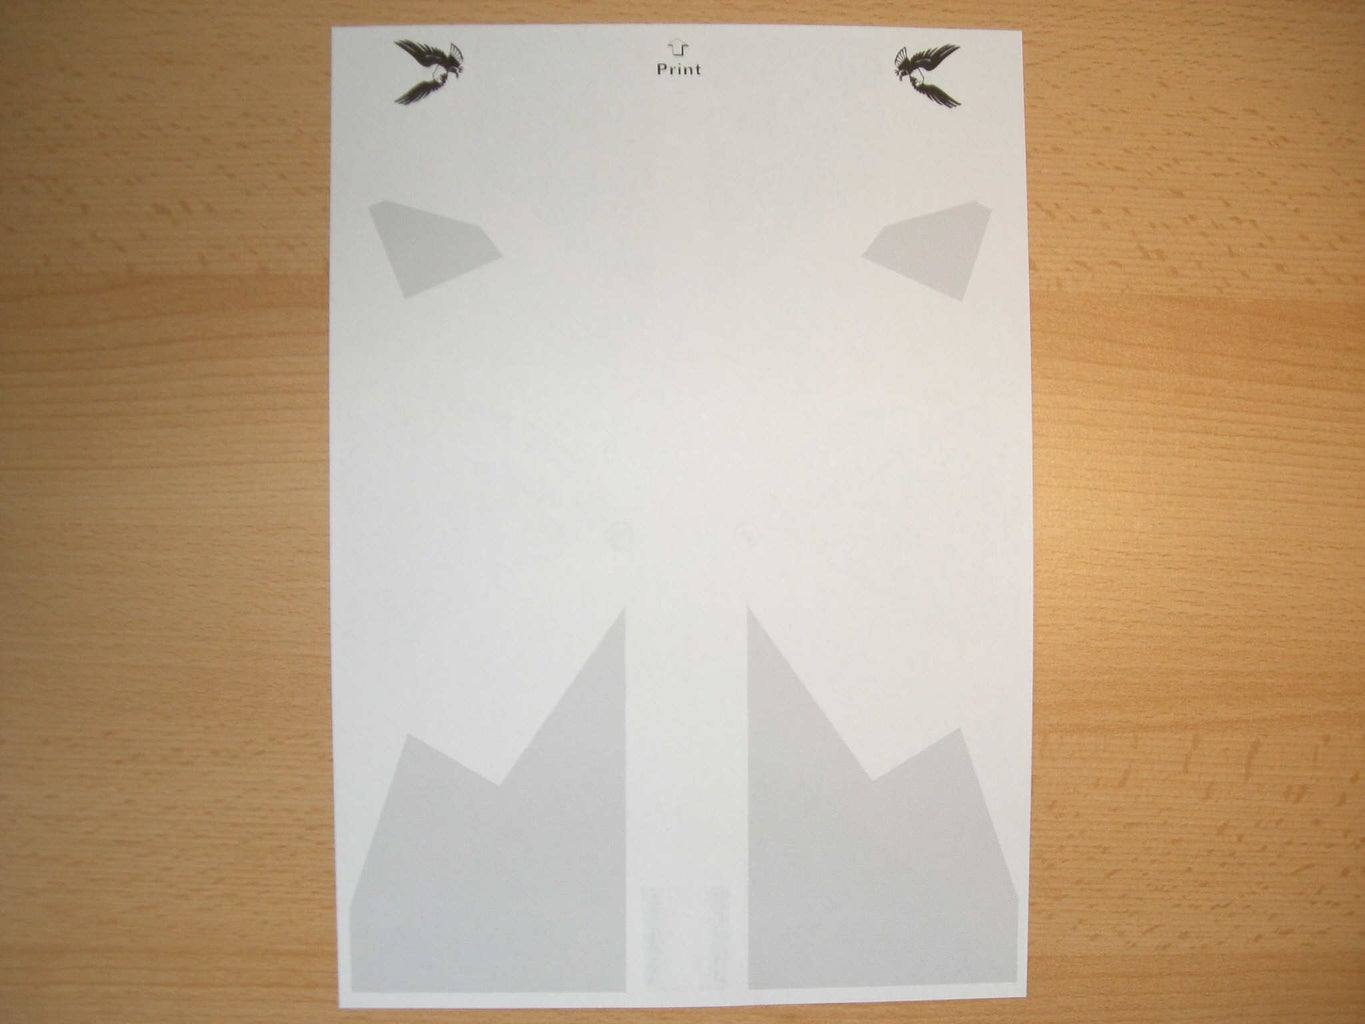 Take a Sheet of Paper (A4 or Letter)